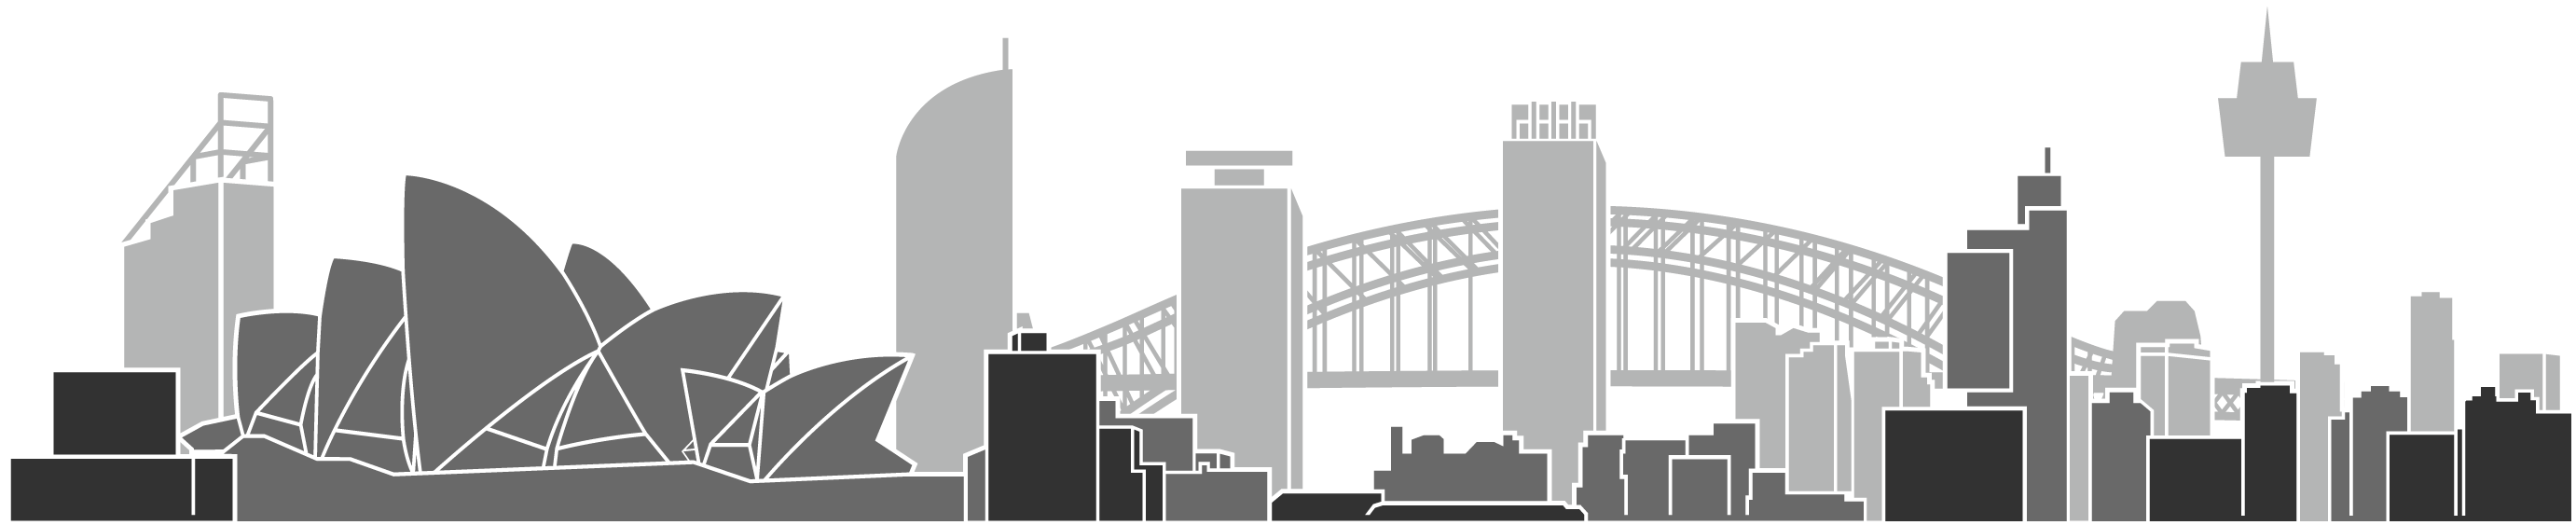 Australia opera house black and white clipart clip transparent download Sydney Opera House Transparent PNG | PNG Mart clip transparent download